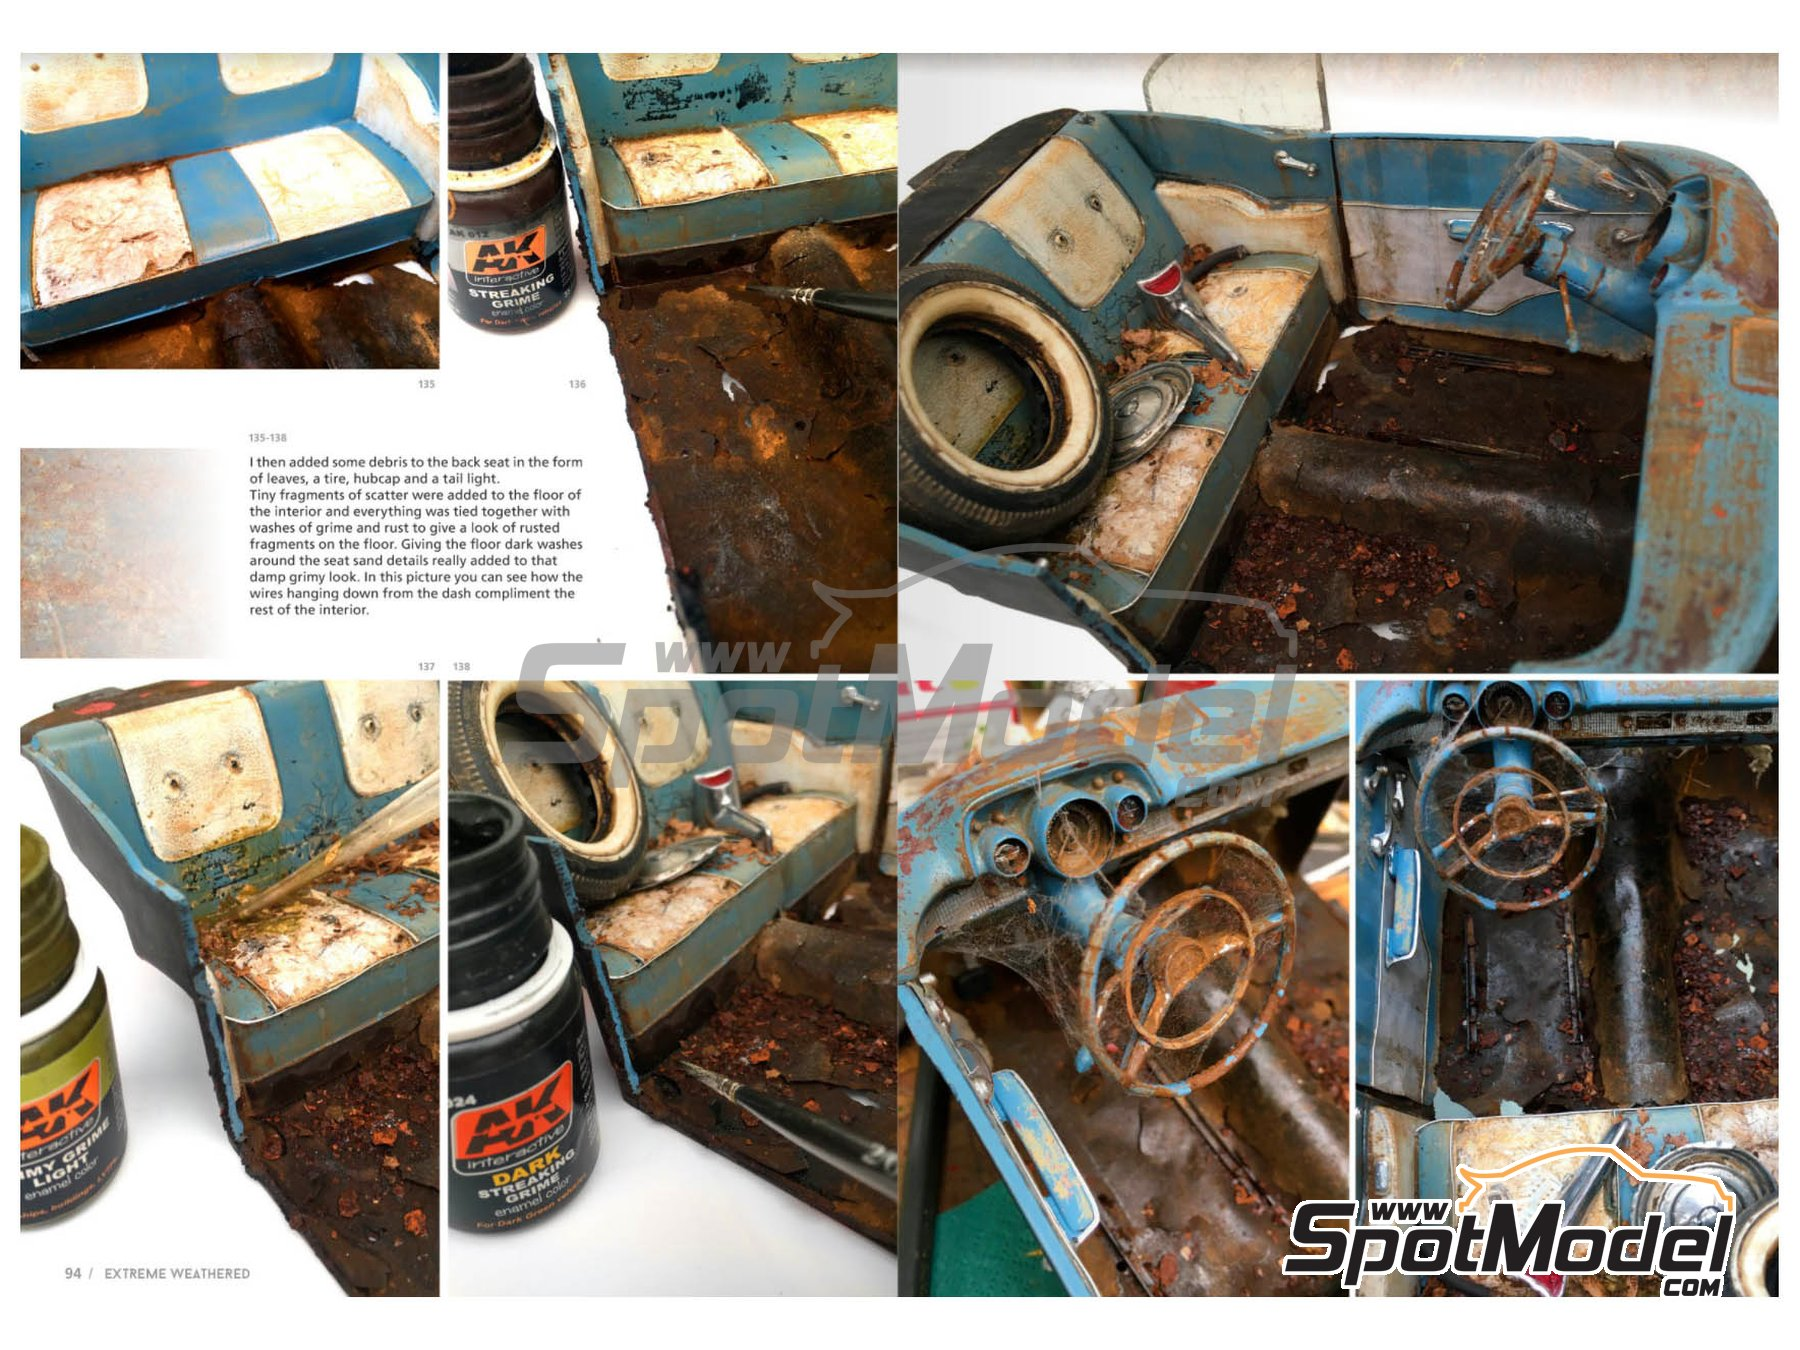 Image 4: Extreme Reality 3 -Weathered vehicles and environments | Book manufactured by AK Interactive (ref.AK-510)